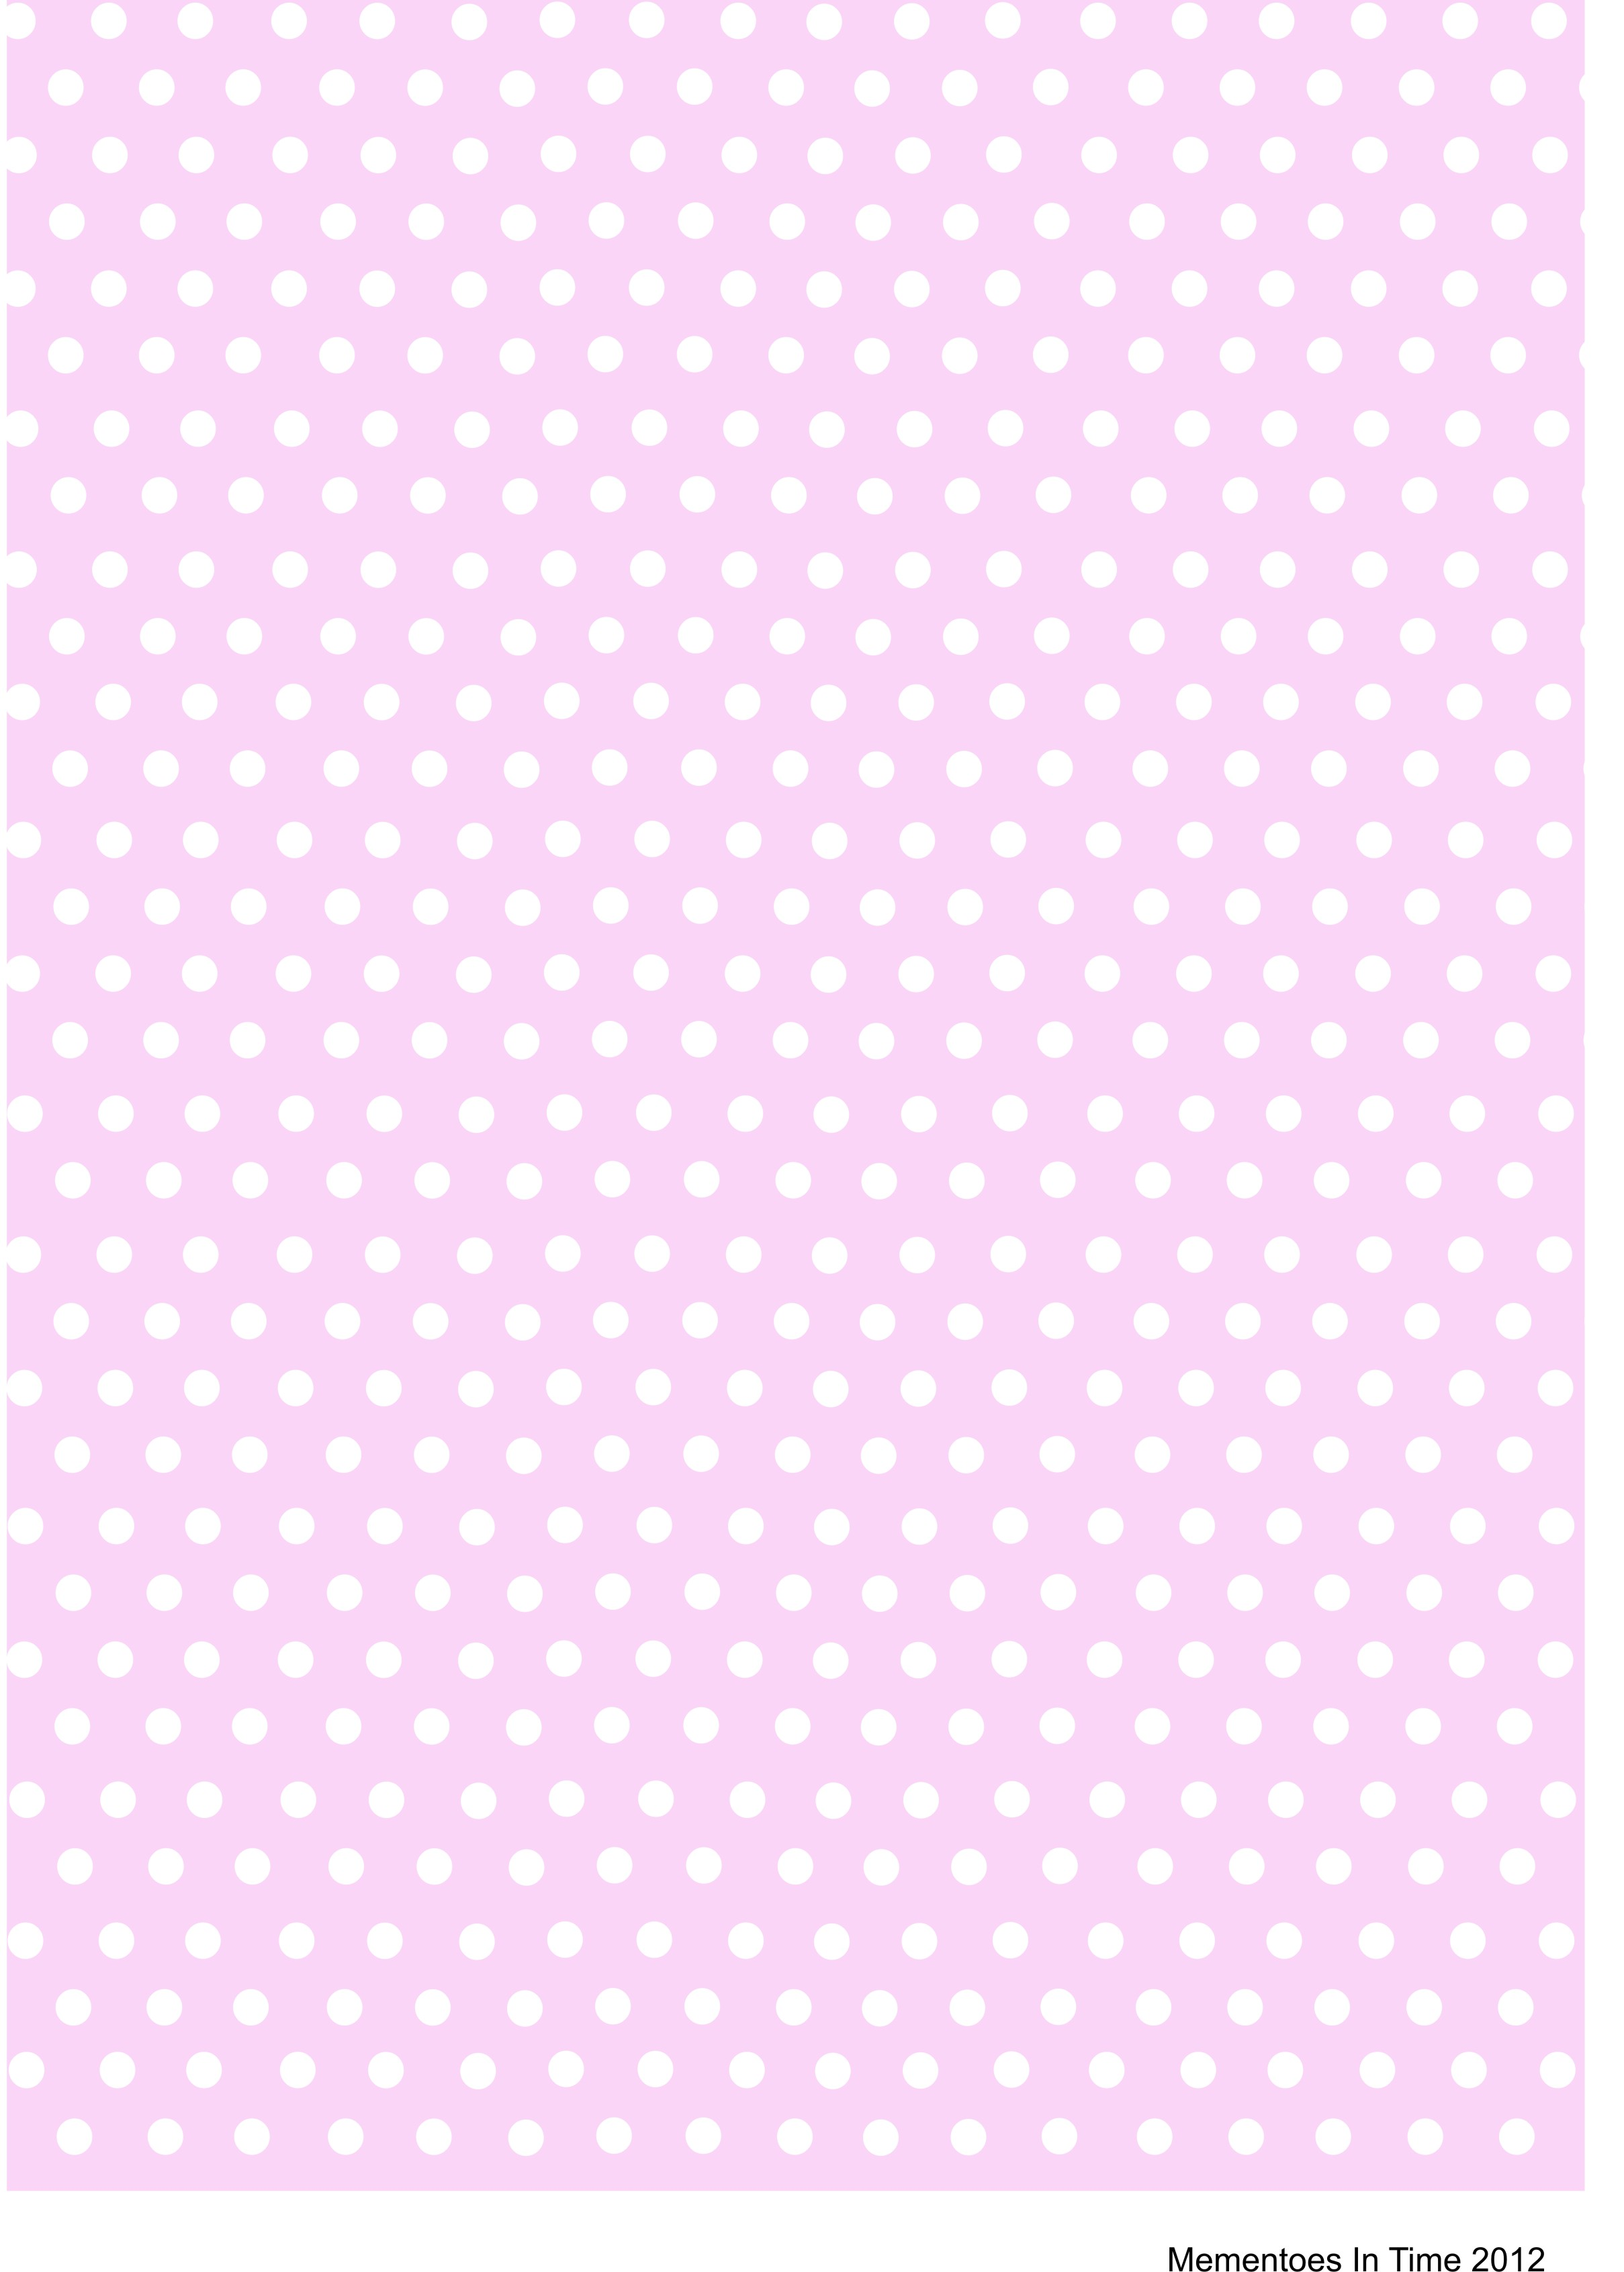 image about Dotty Paper Printable identify Totally free Backing Papers - Mementoes Within just Year